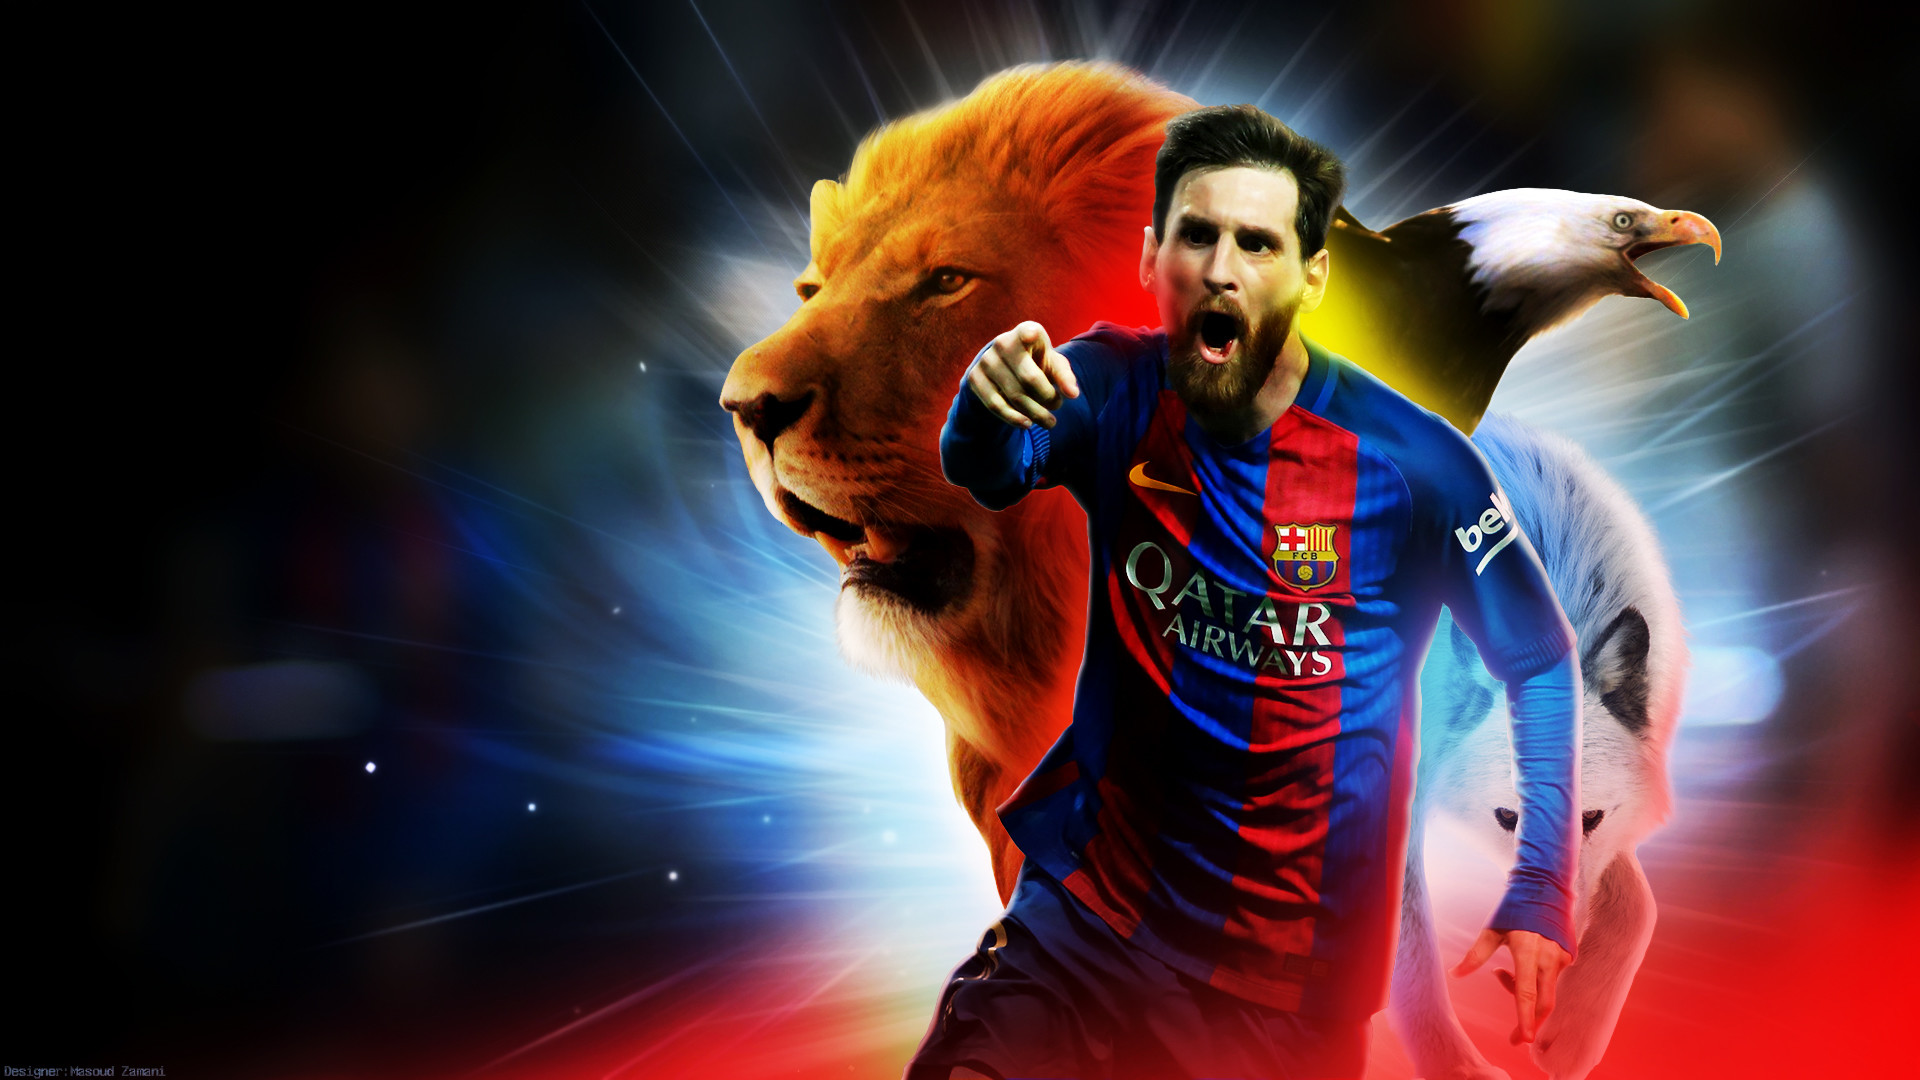 messi wallpaper (74+ images)